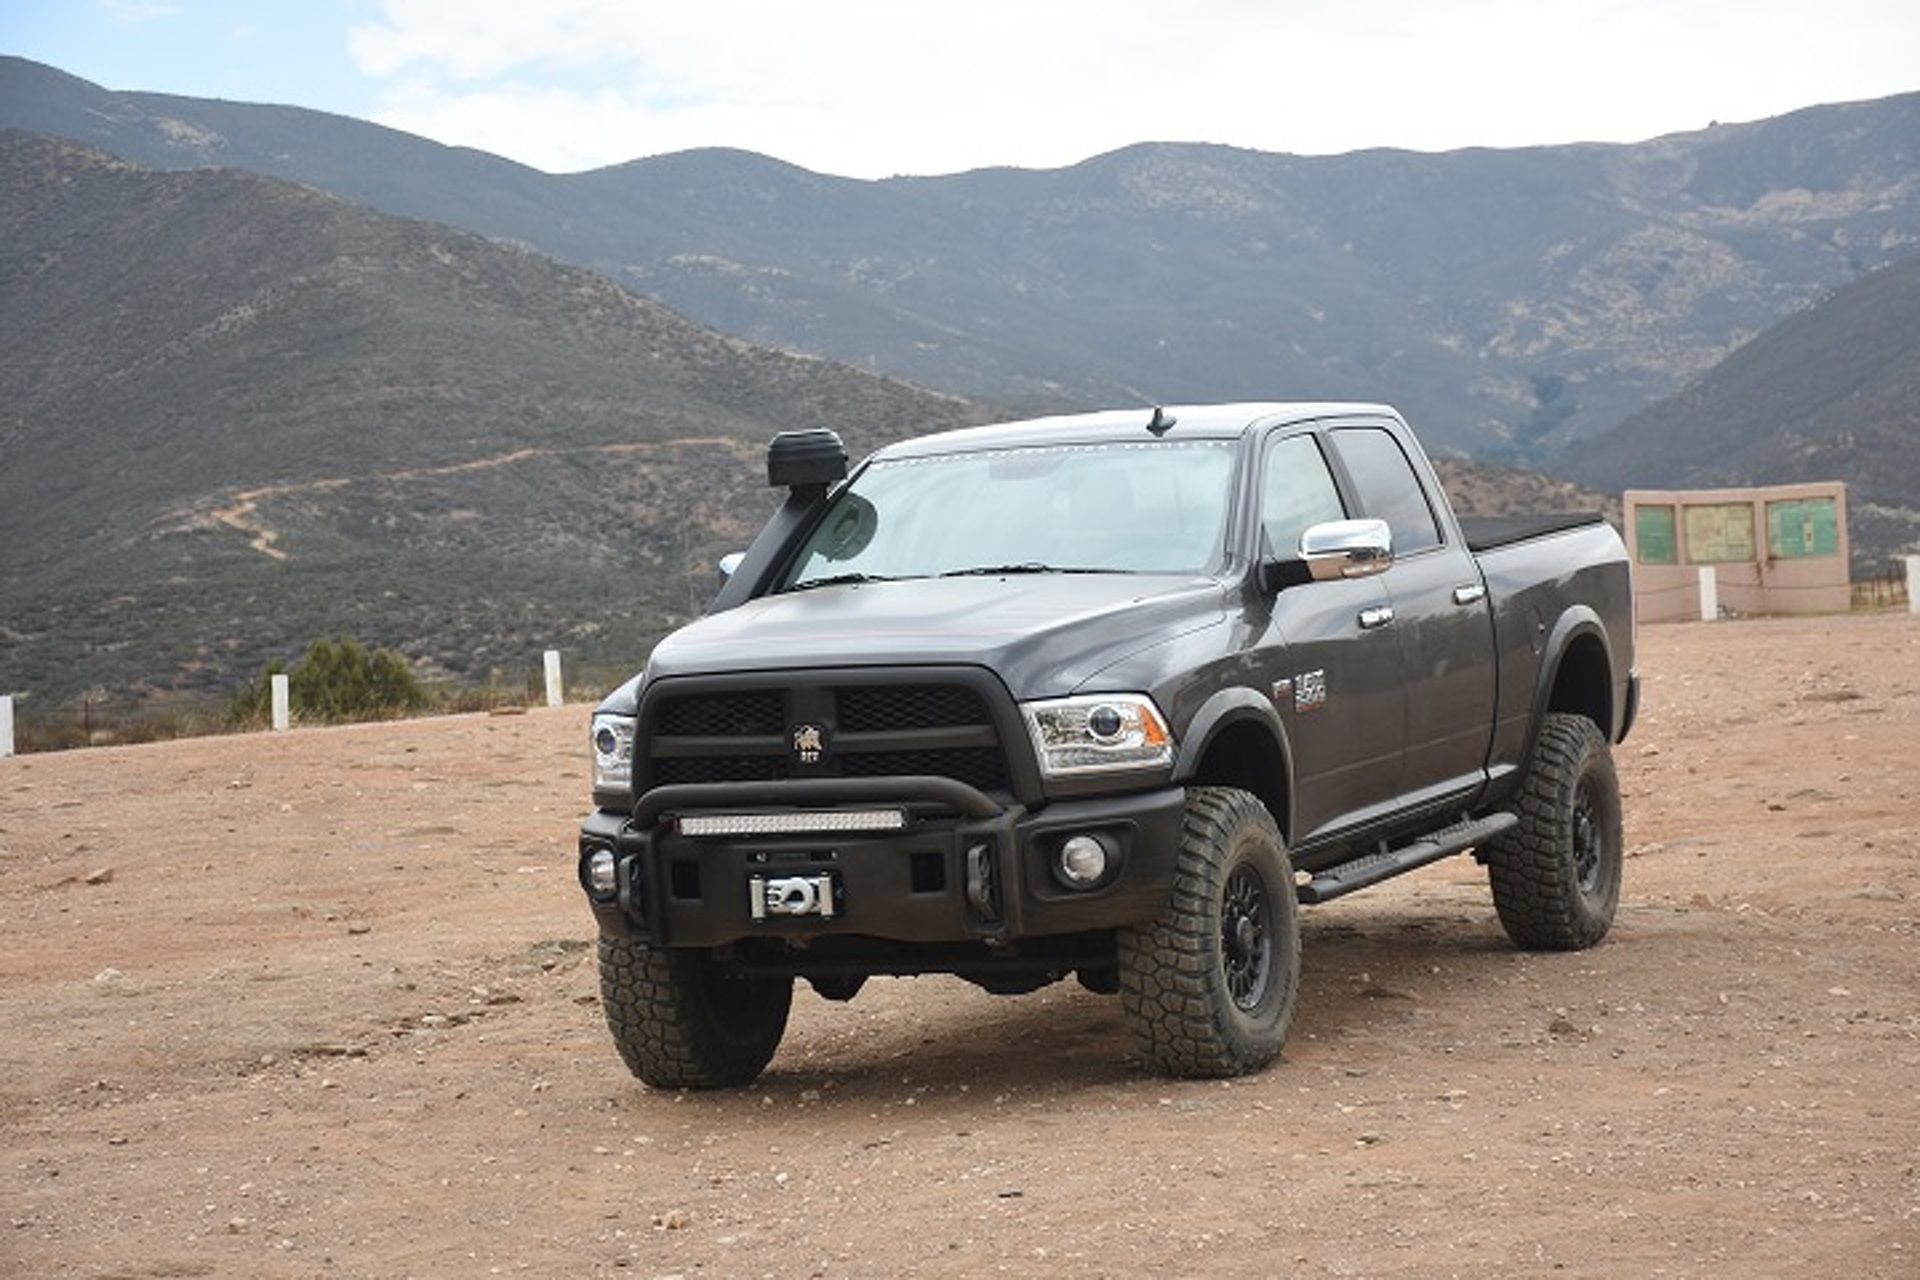 A Mountain Is No Match for the AEV Ram Prospector: First Drive